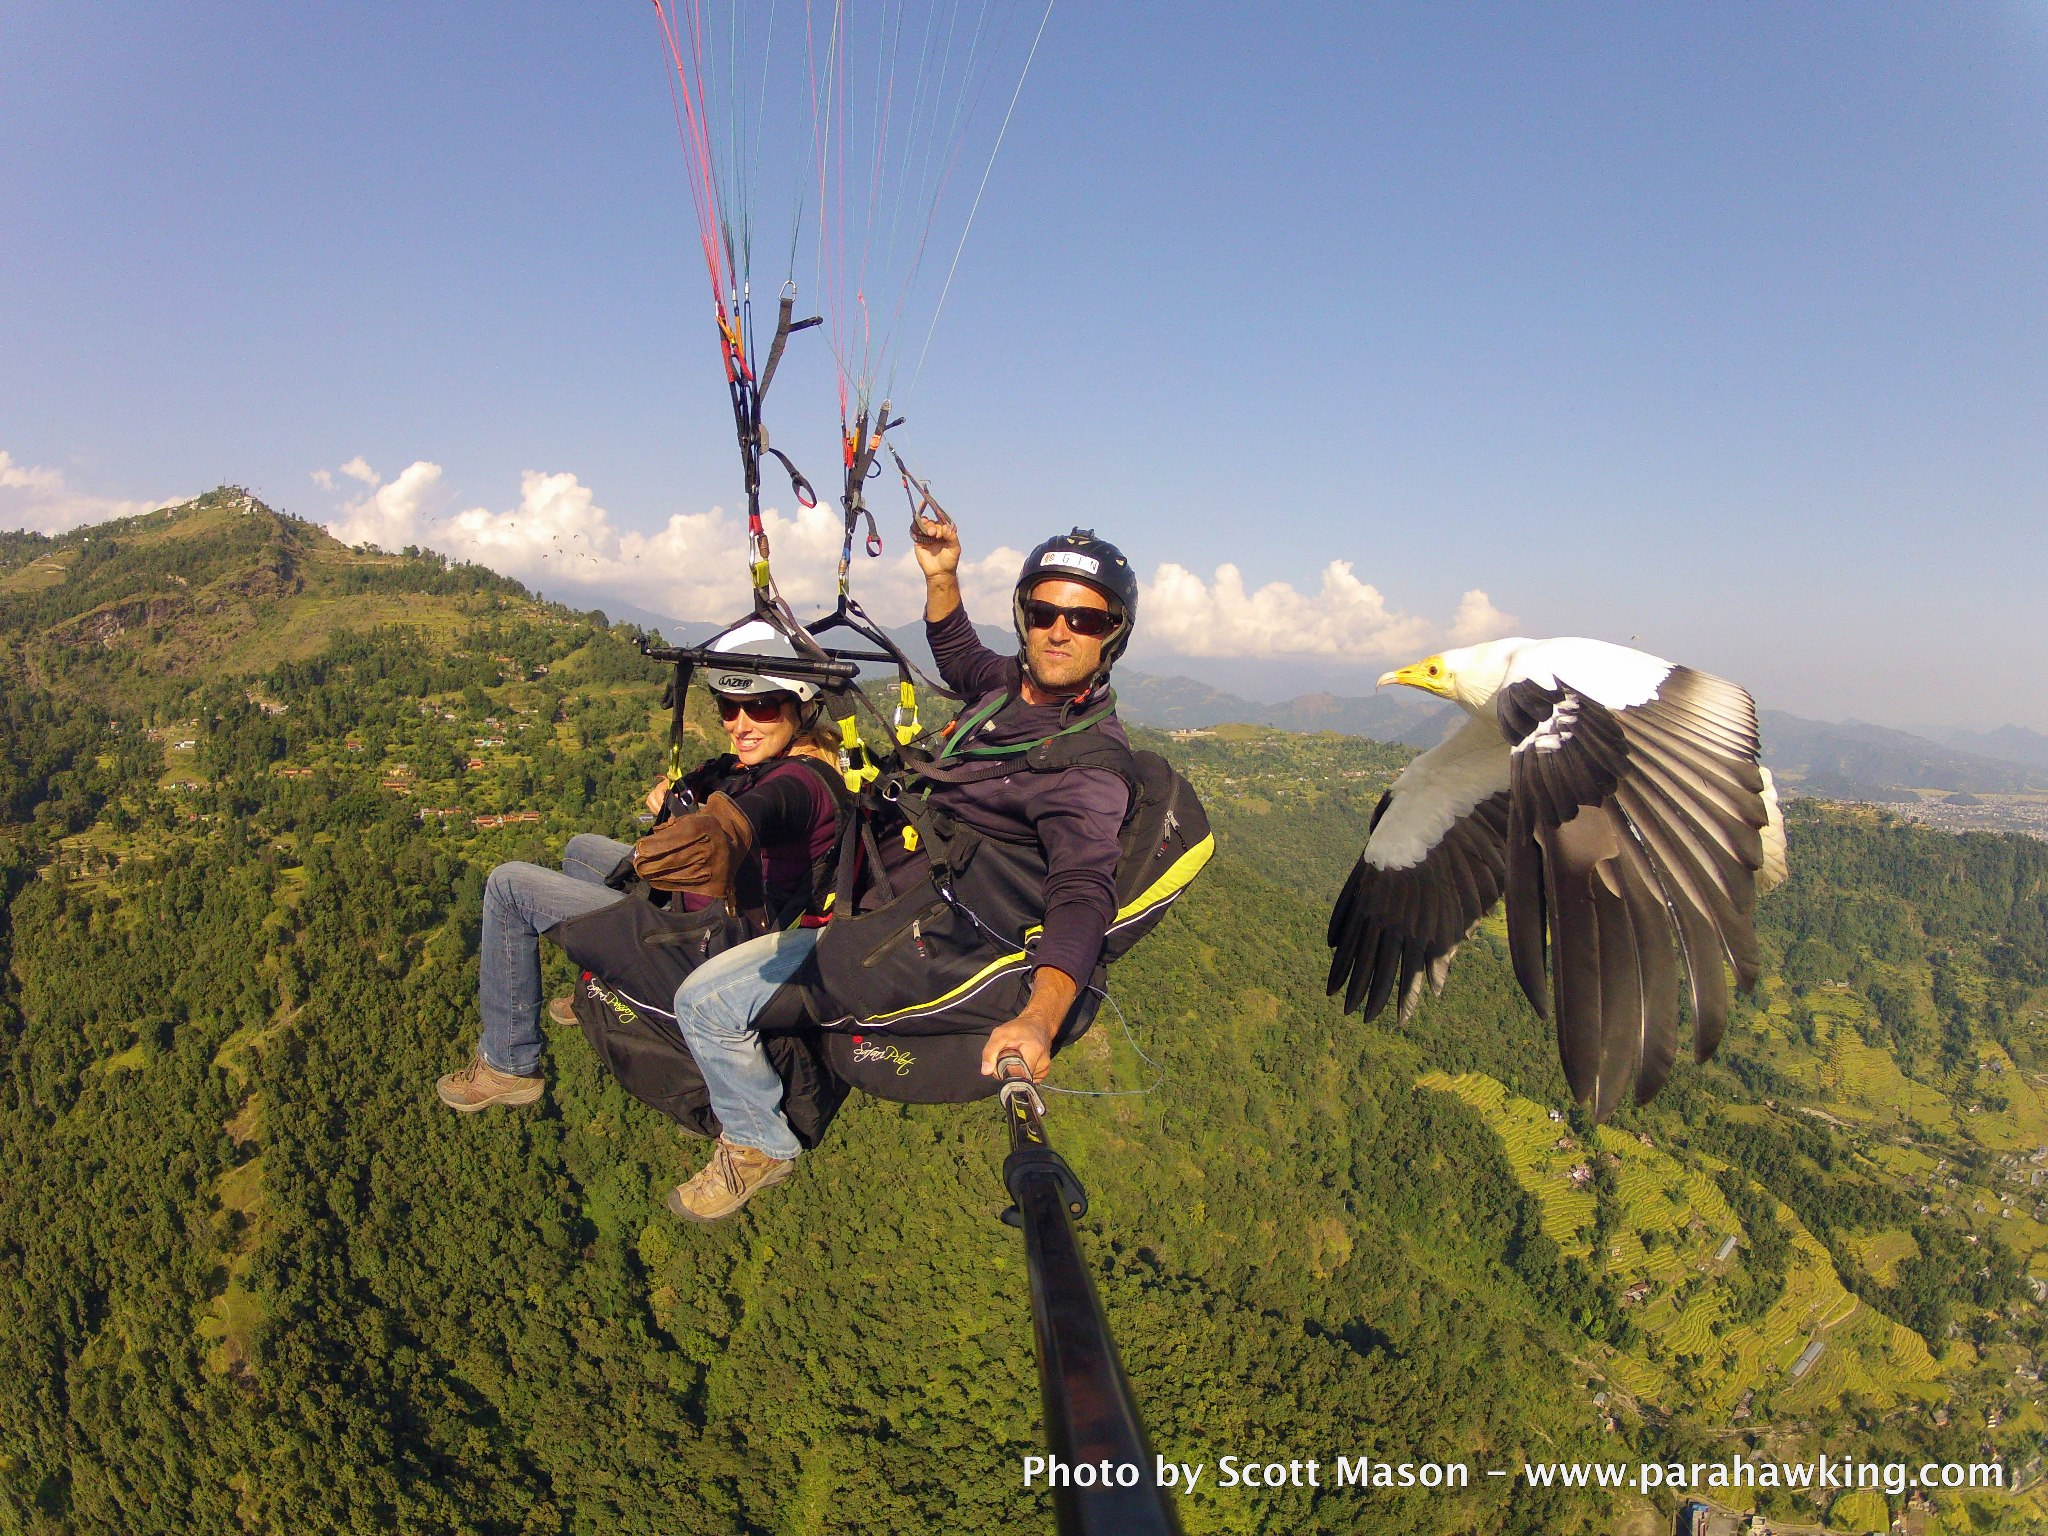 Extreme Parahawking in Nepal